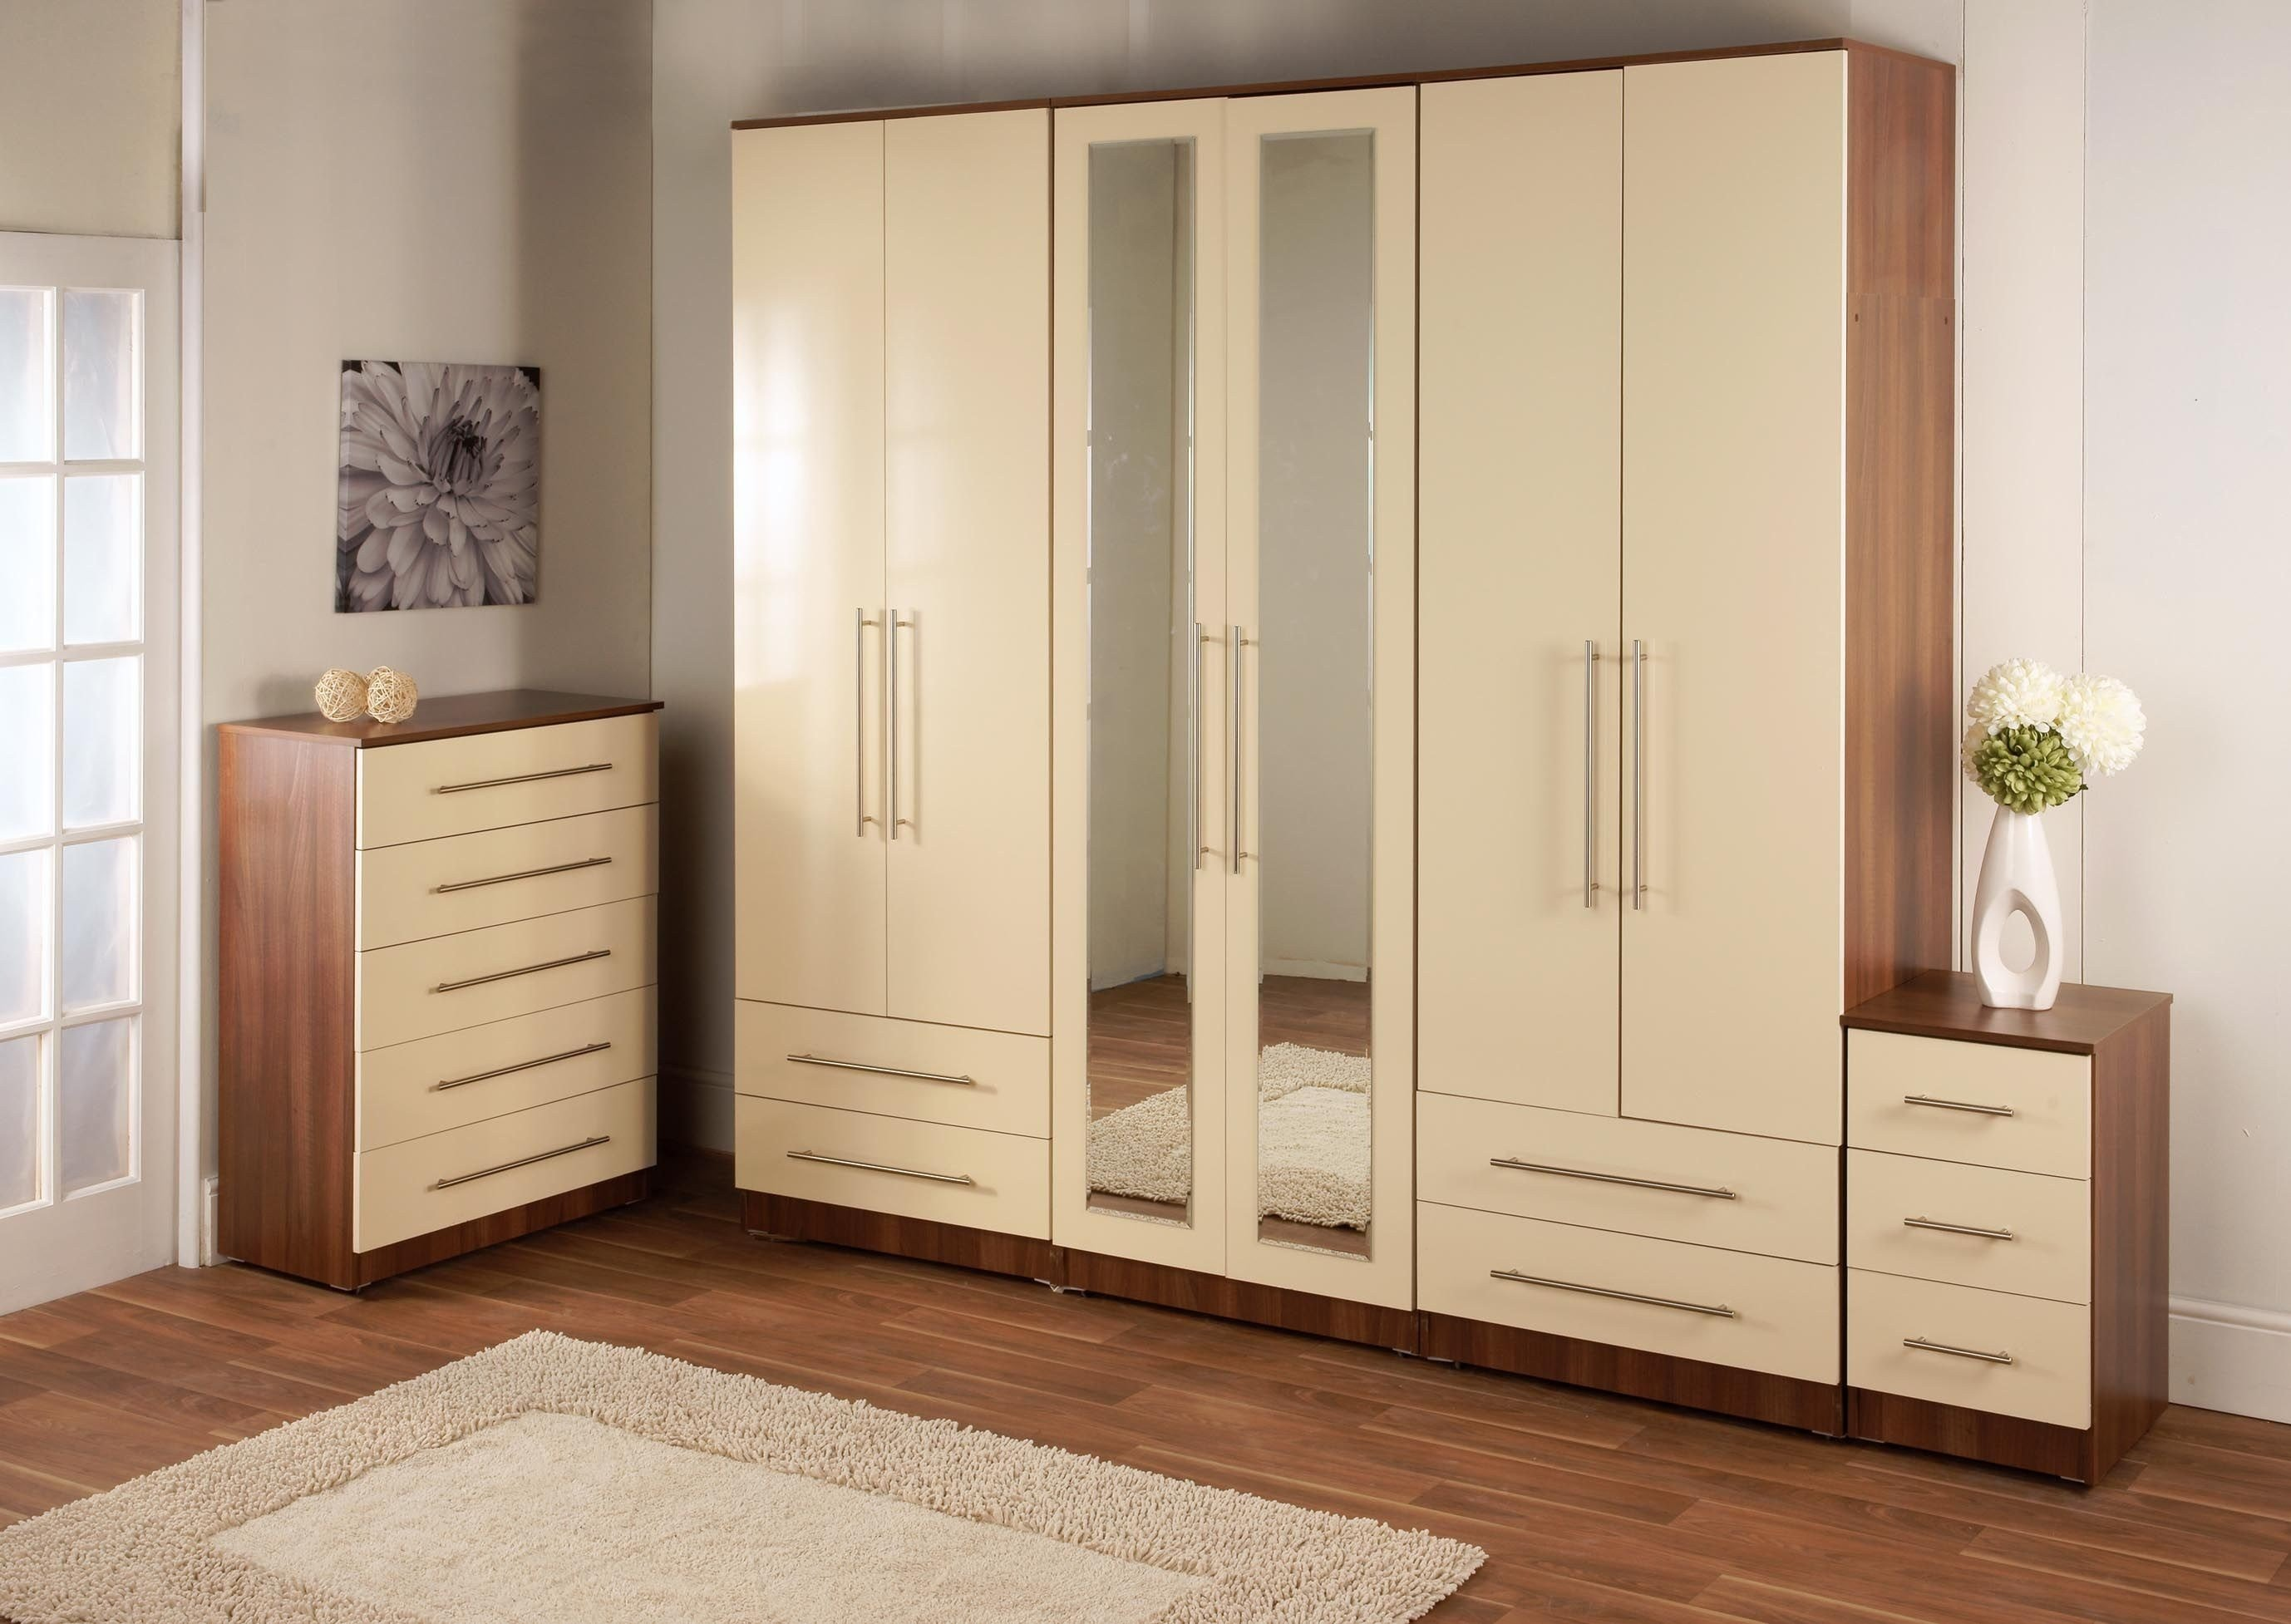 Best Almirah Designs For Bedroom With Pictures - August ...